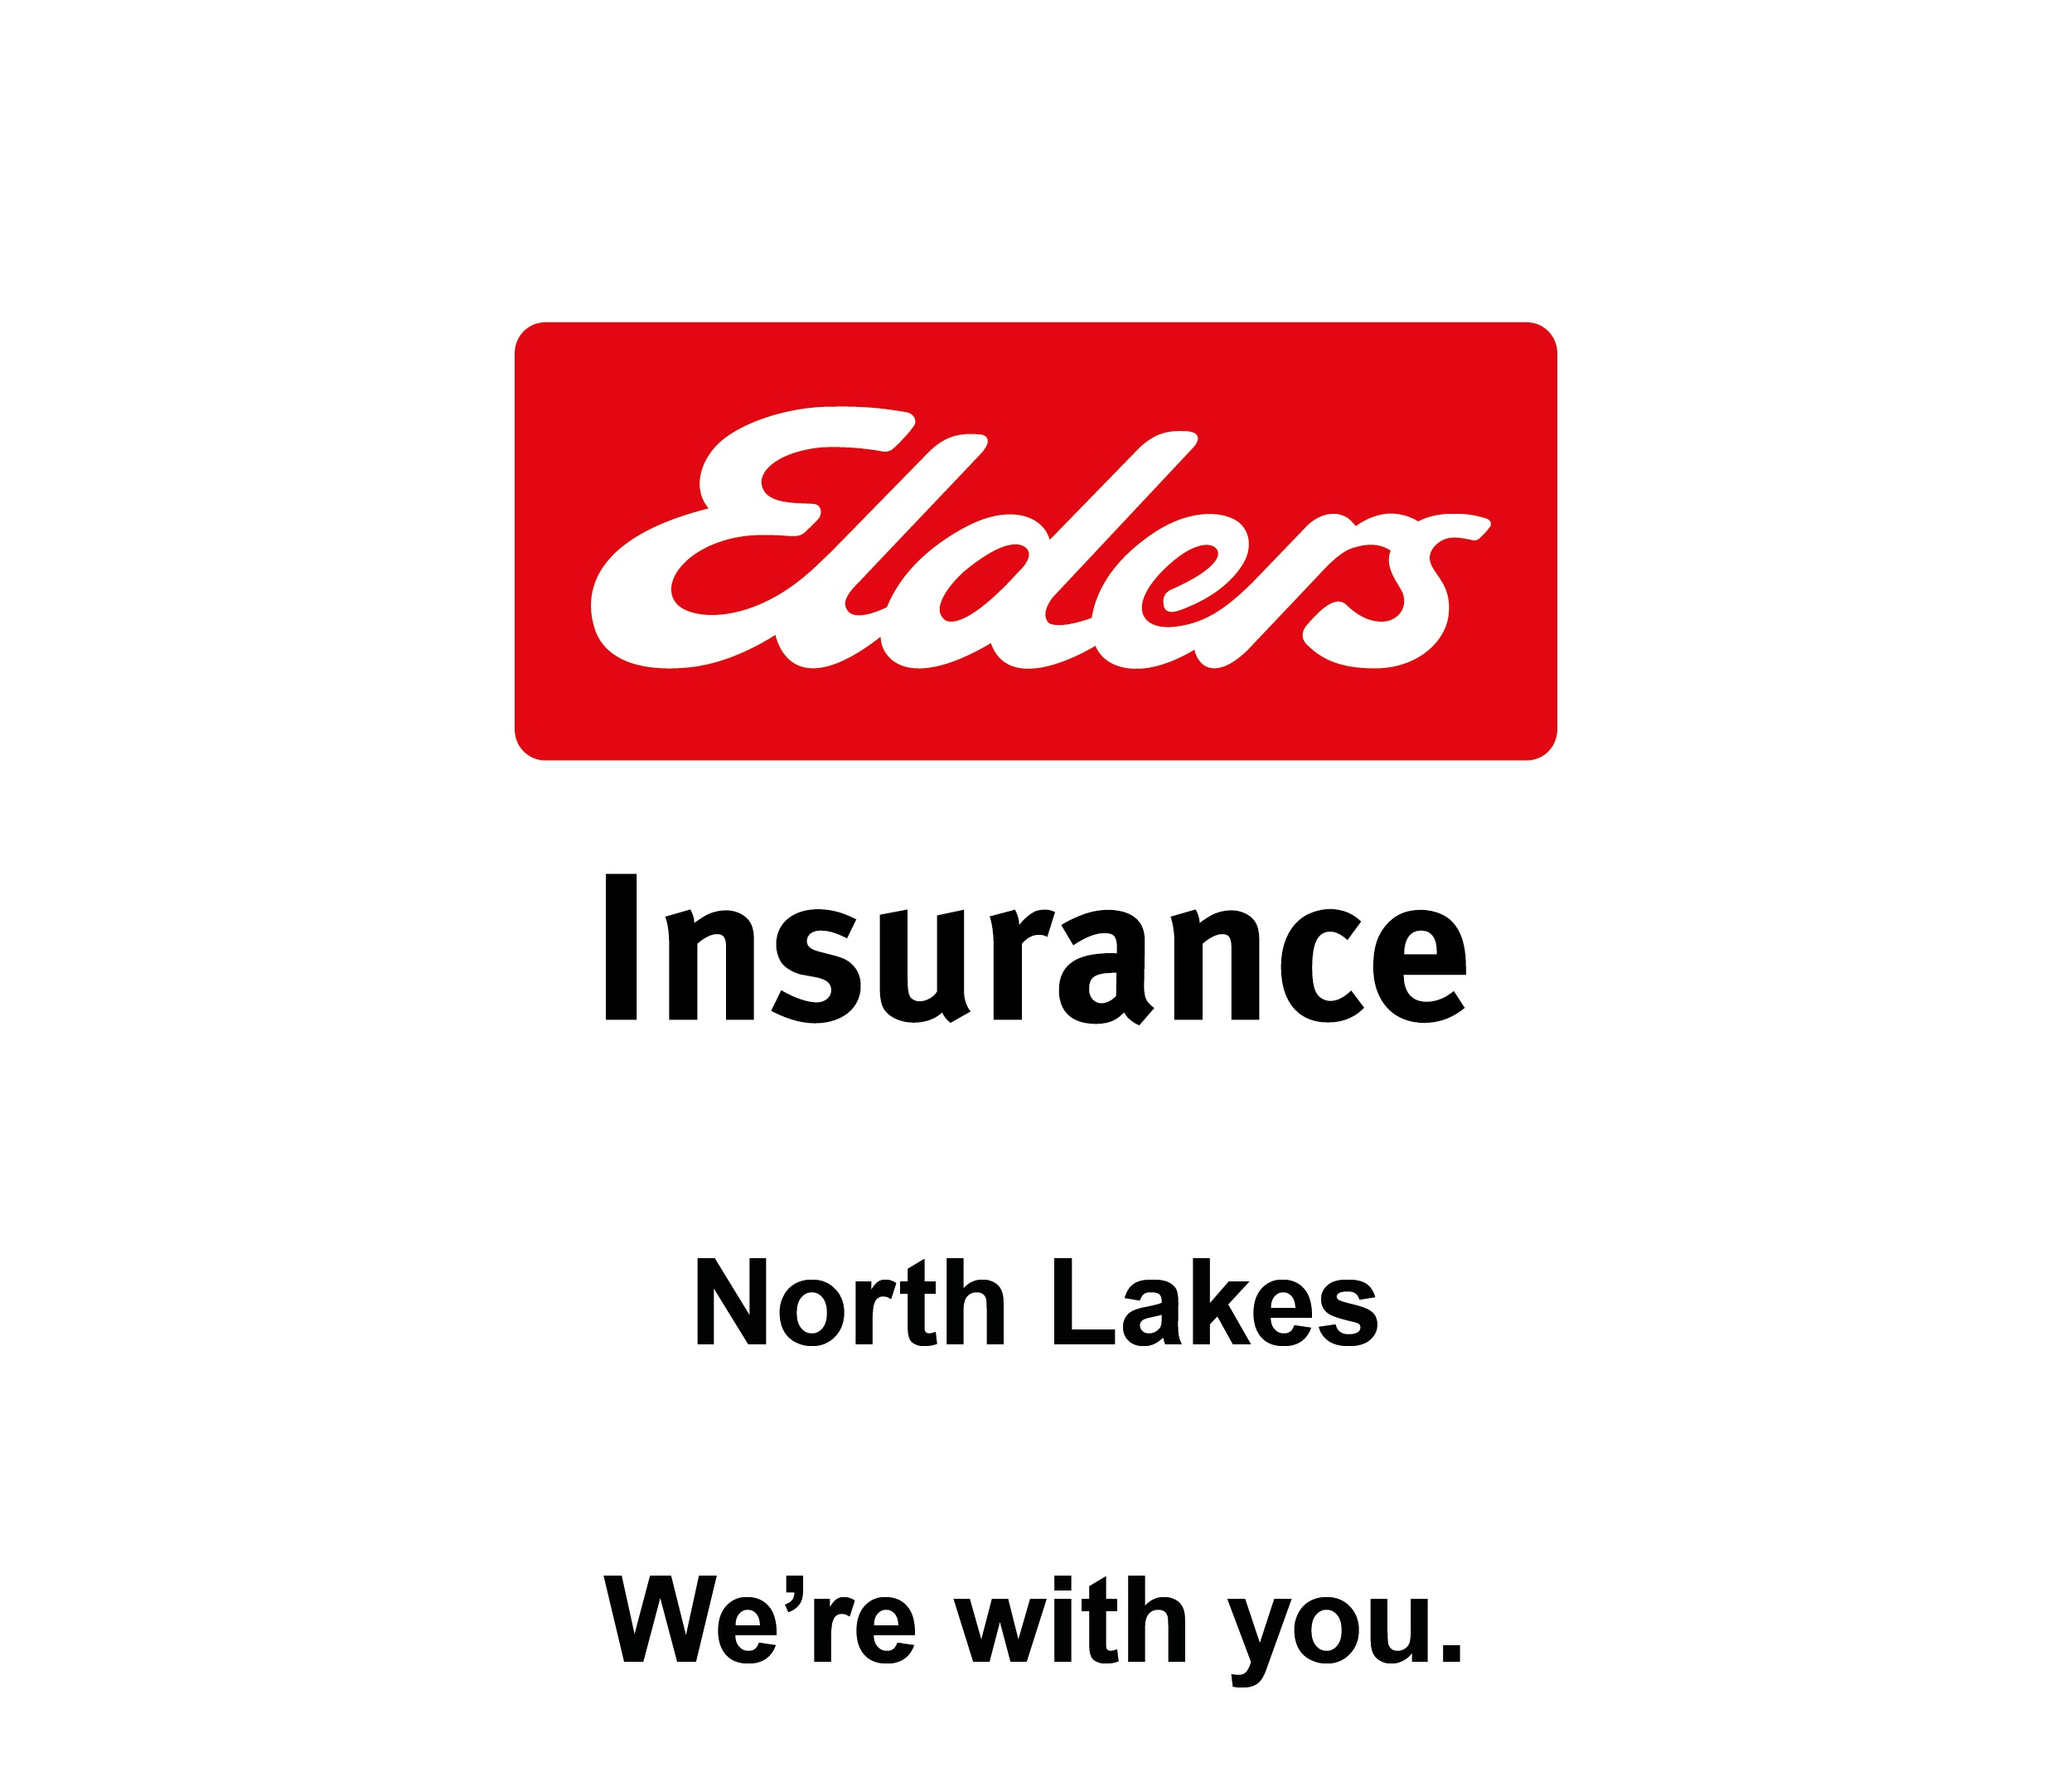 Insurance North Lakes were with you